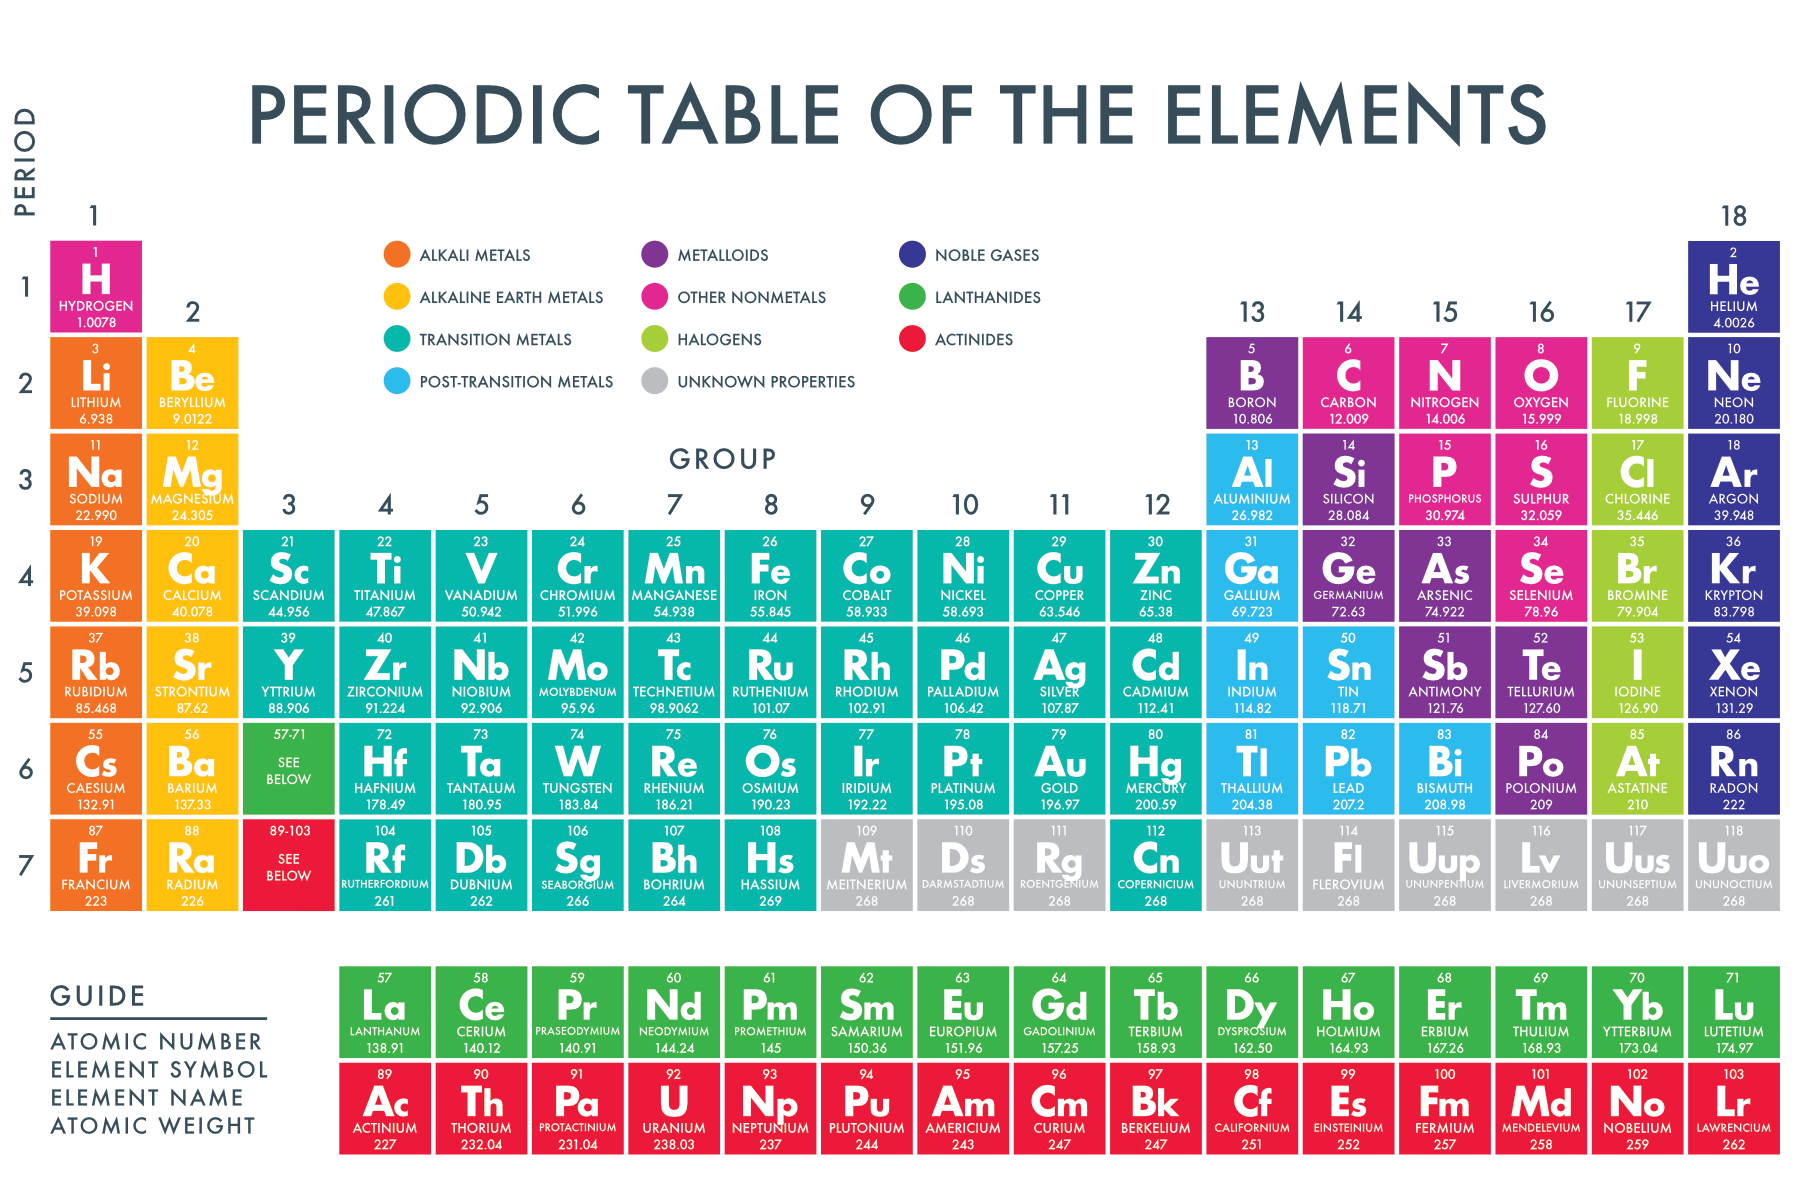 Periodic table of the elements paperzip for 10 elements of the periodic table